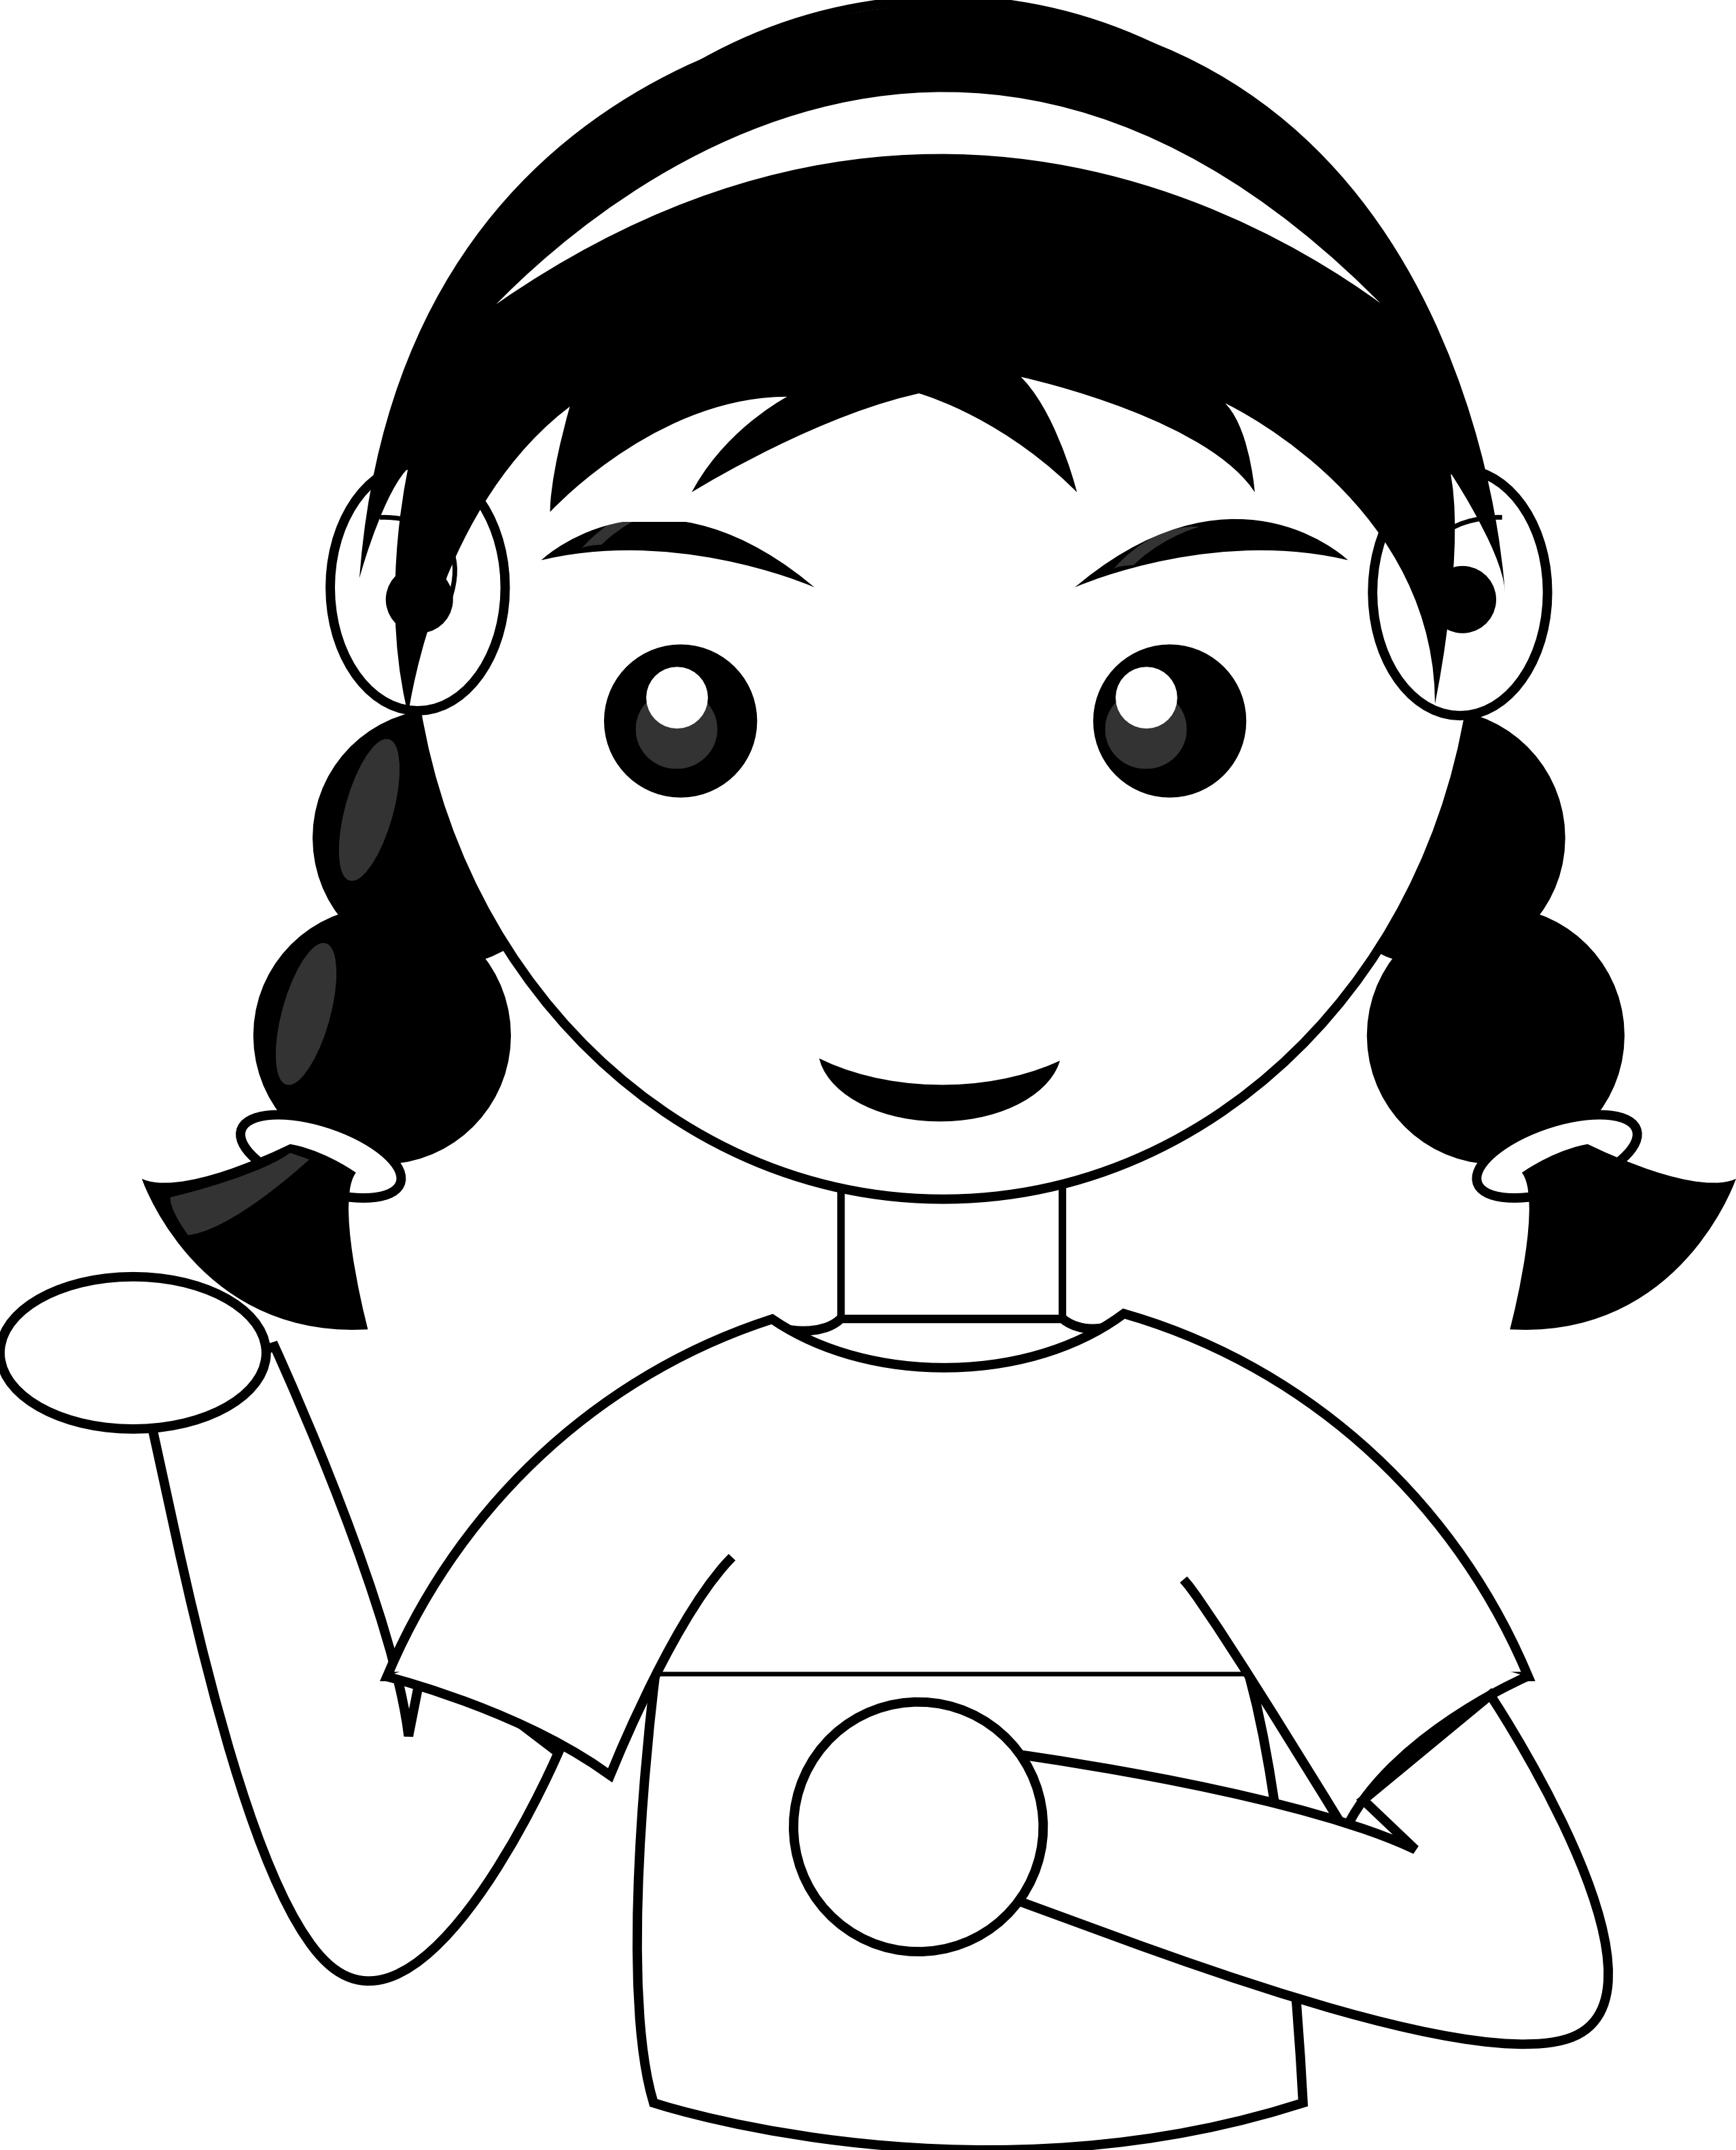 clip stock Mole face free on. Sisters clipart black and white